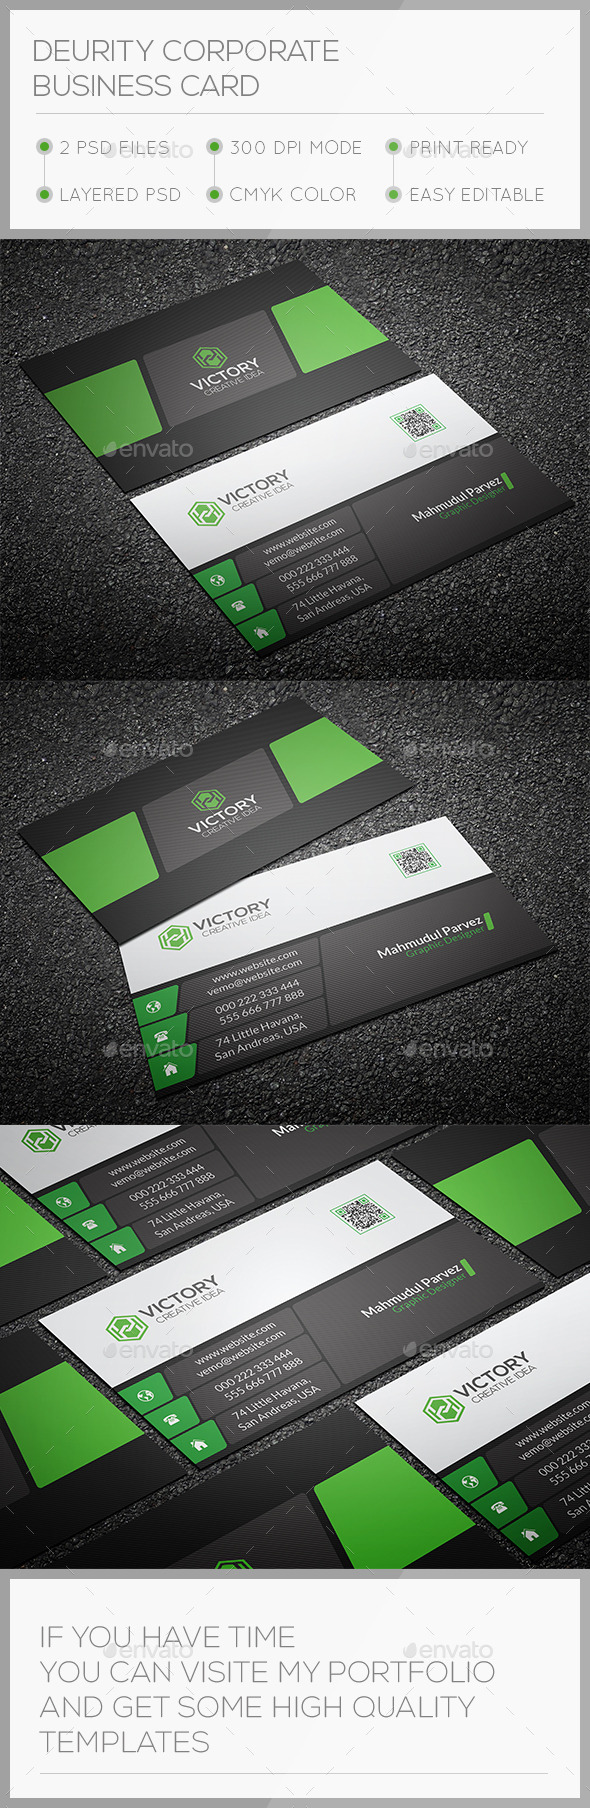 Deurity Corporate Business Card - Corporate Business Cards